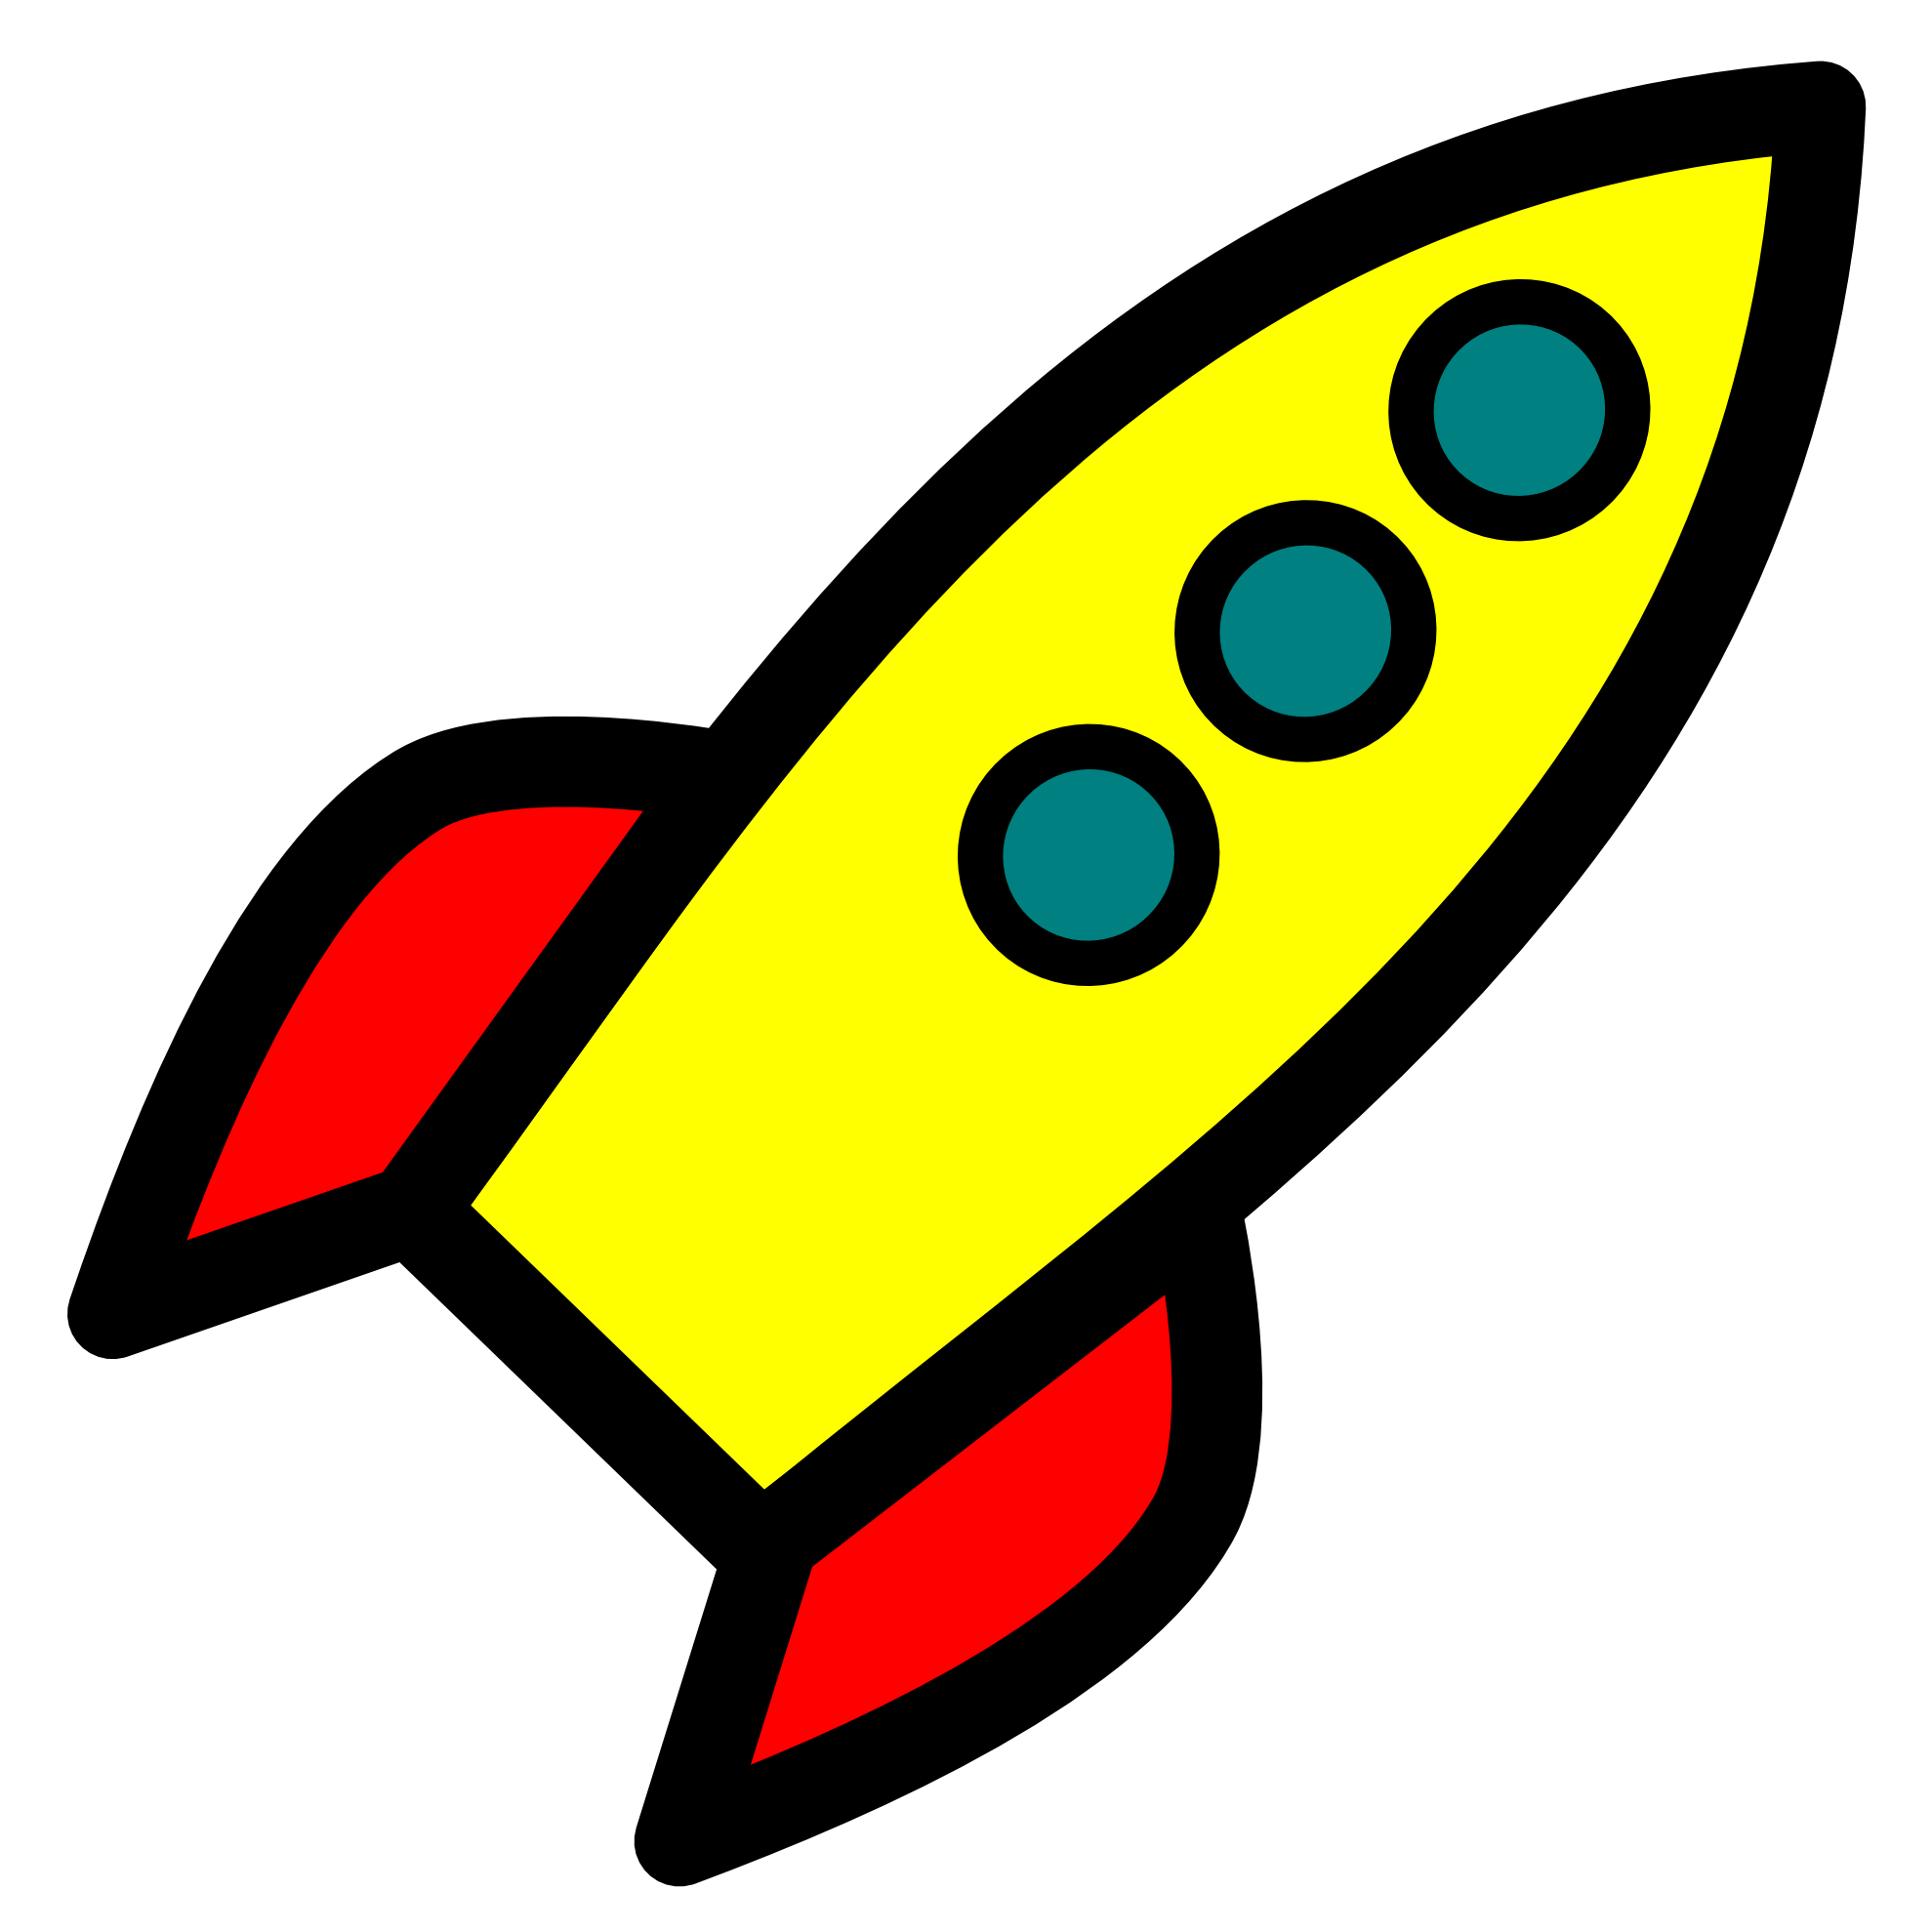 Rocketship pictures of a rocket ship free download clip art